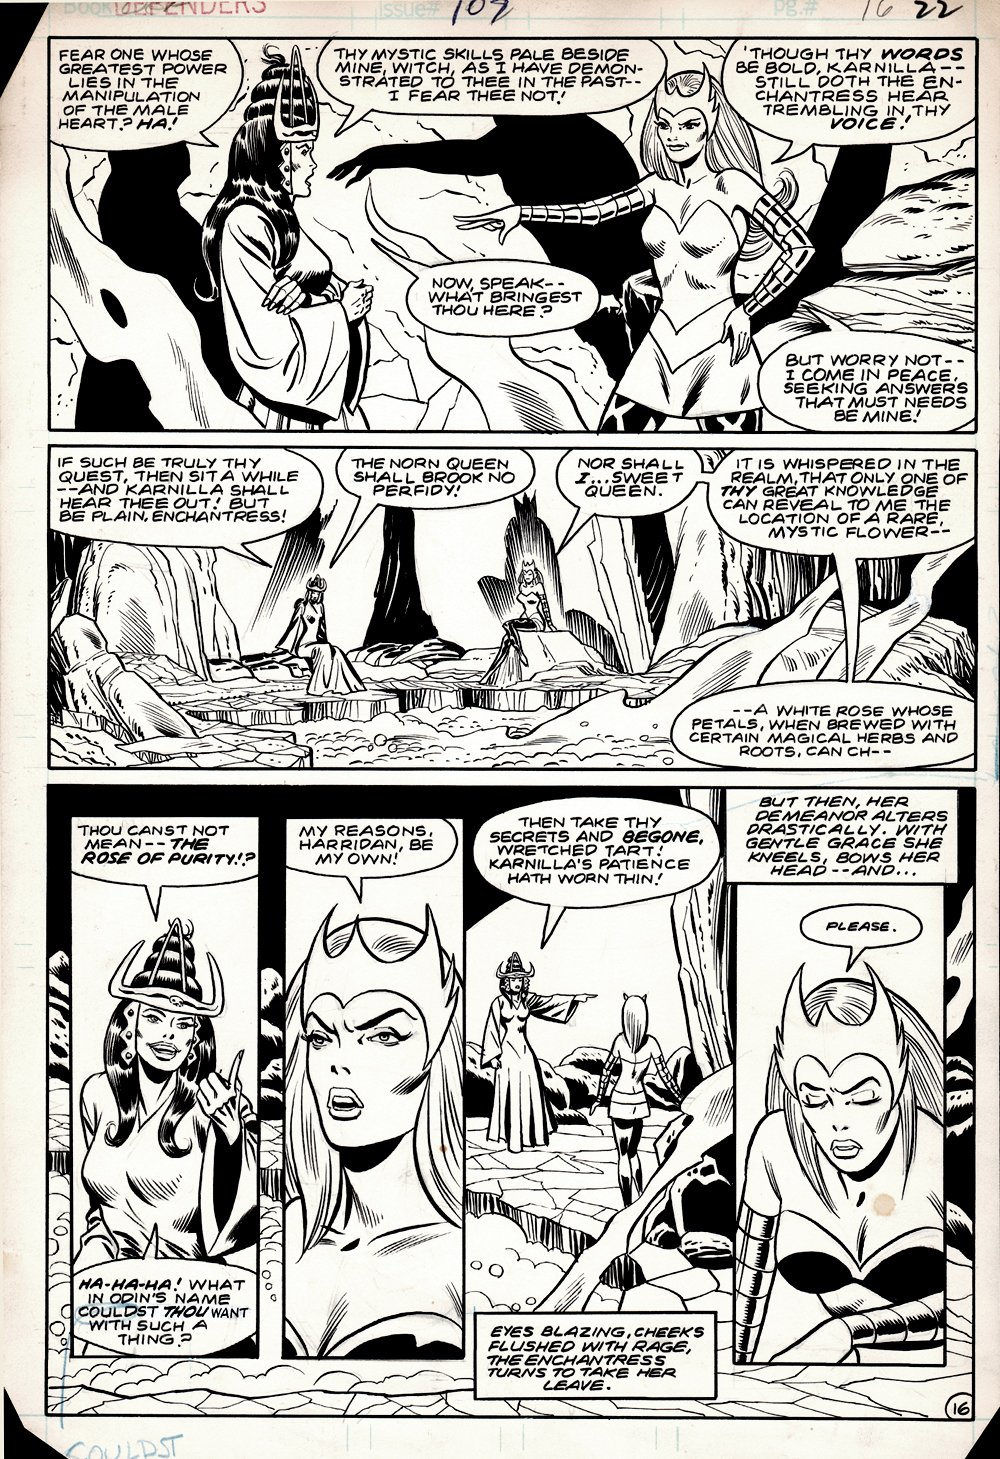 Defenders #107 p 16 (Karnilla, Queen of The Norns & The Enchantress!) 1982